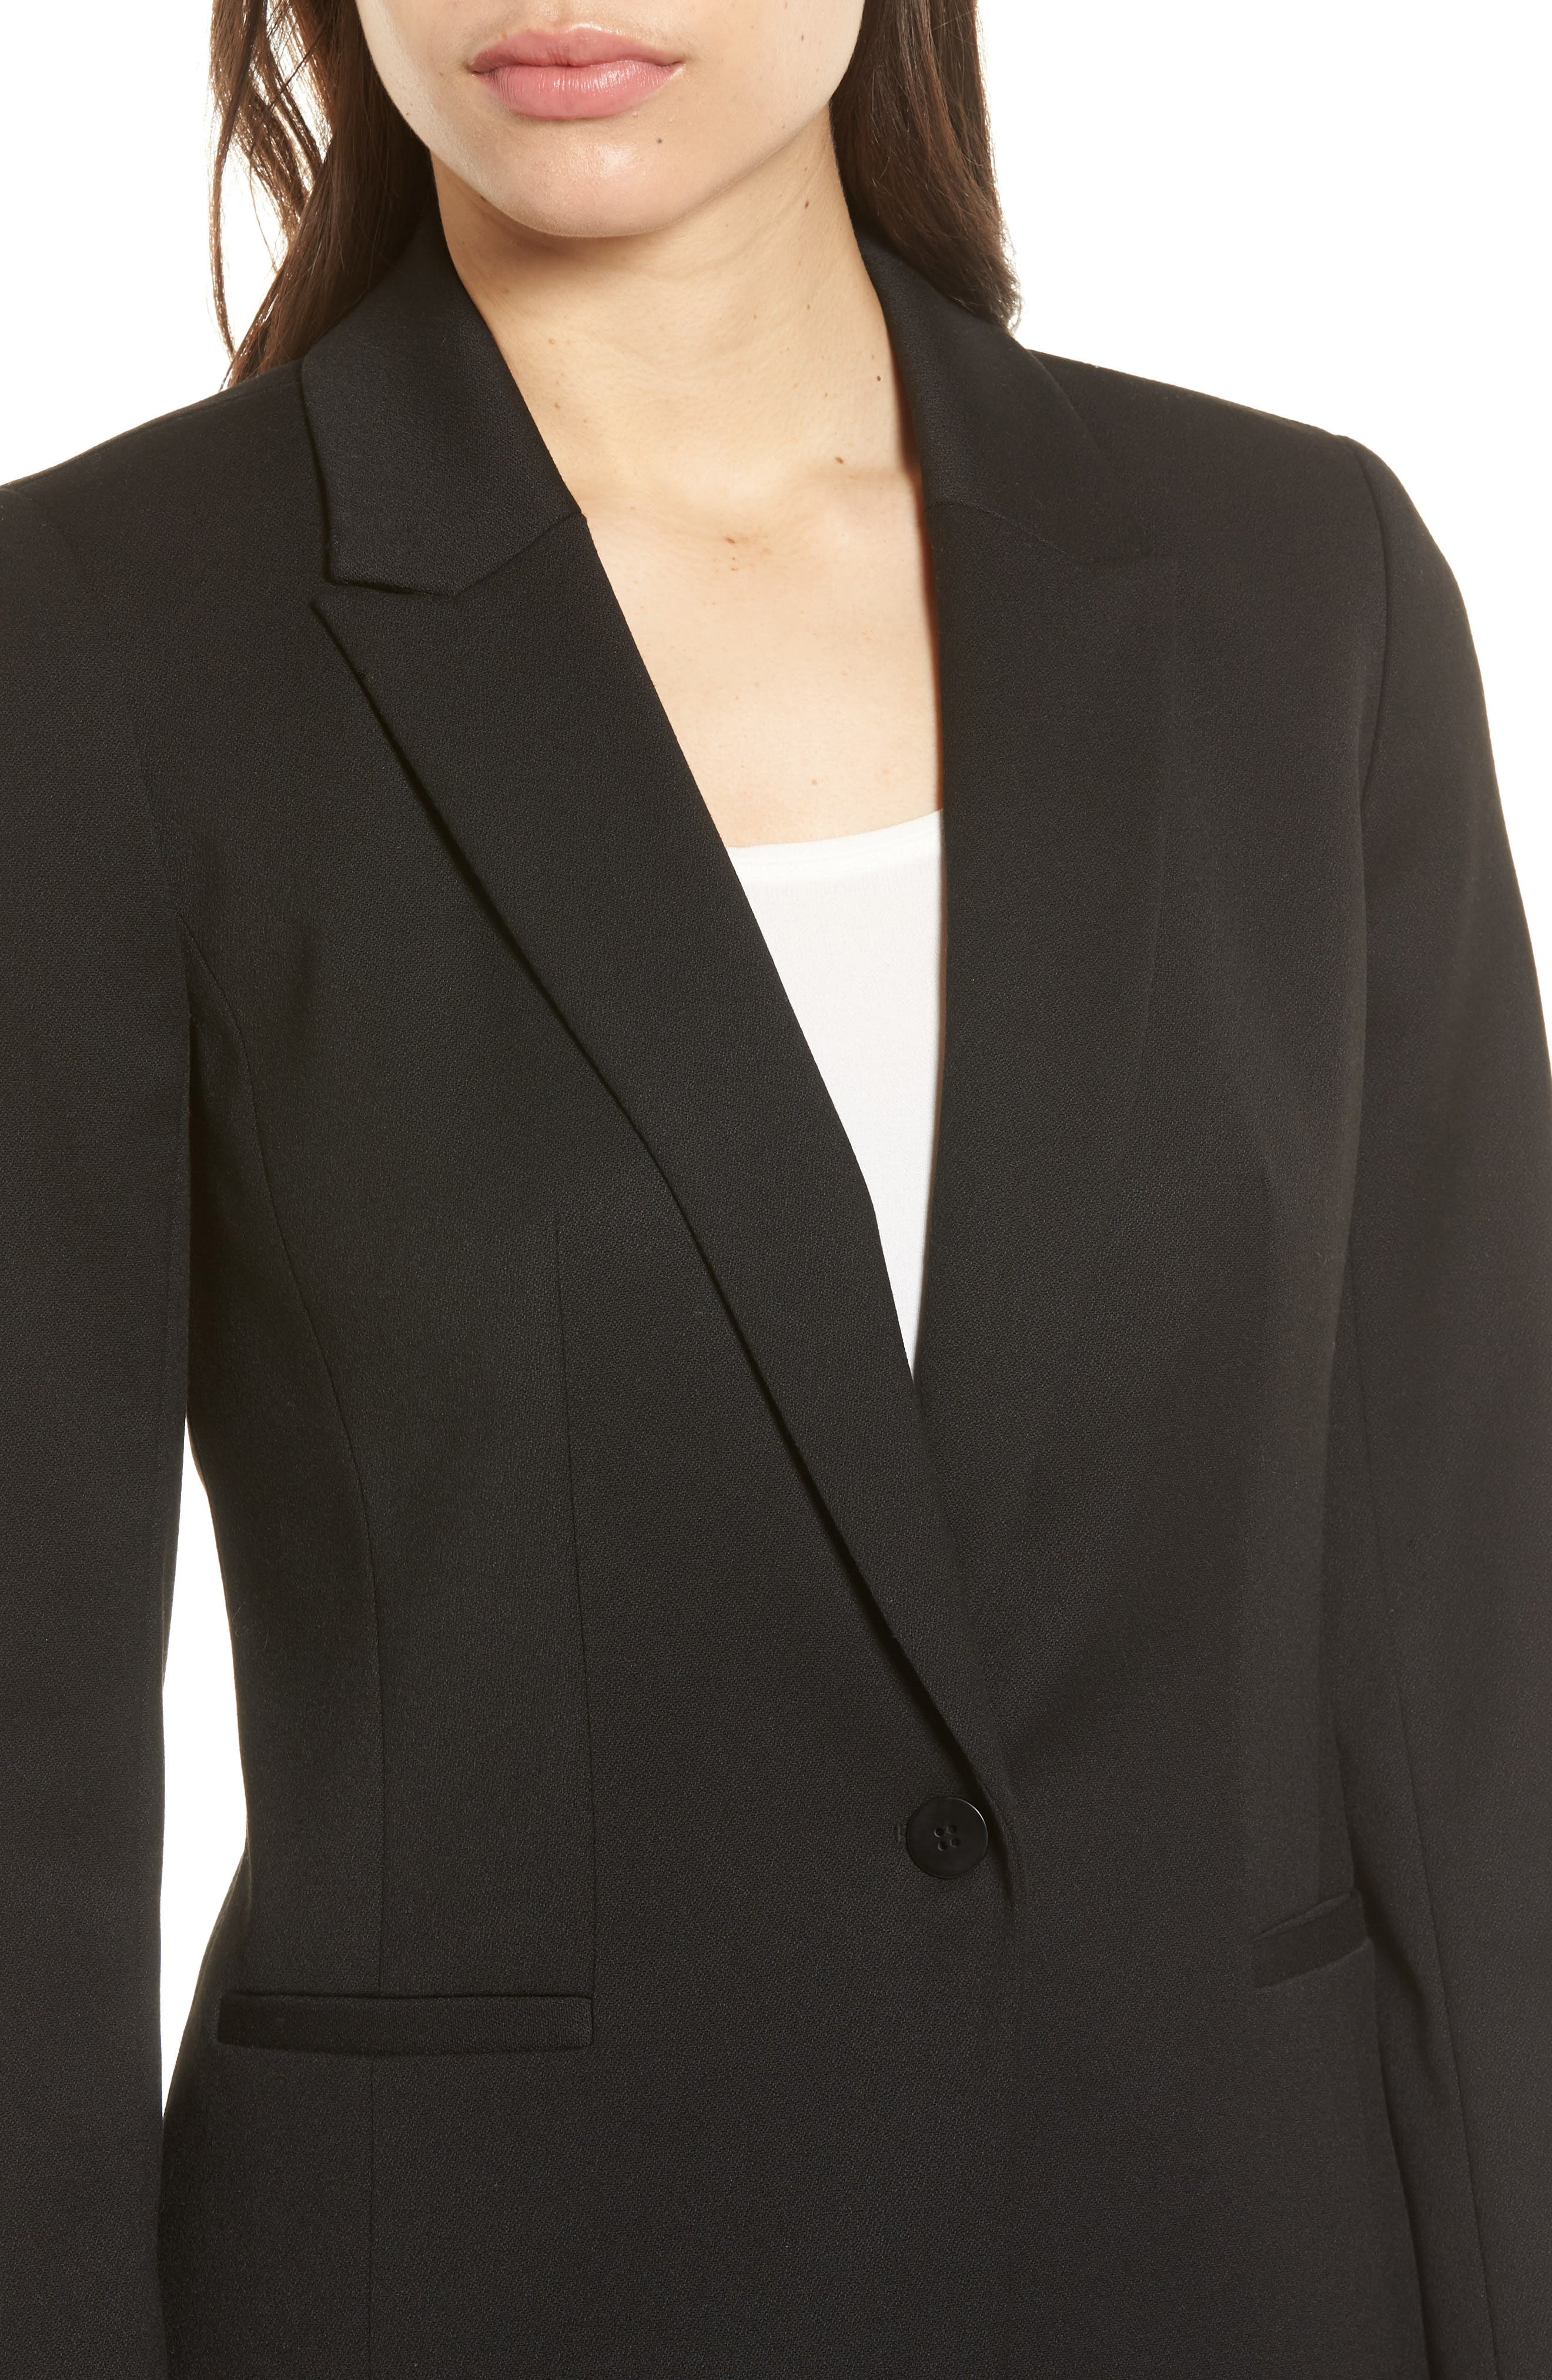 Stretch Crepe Suit Jacket,                             Alternate thumbnail 4, color,                             001